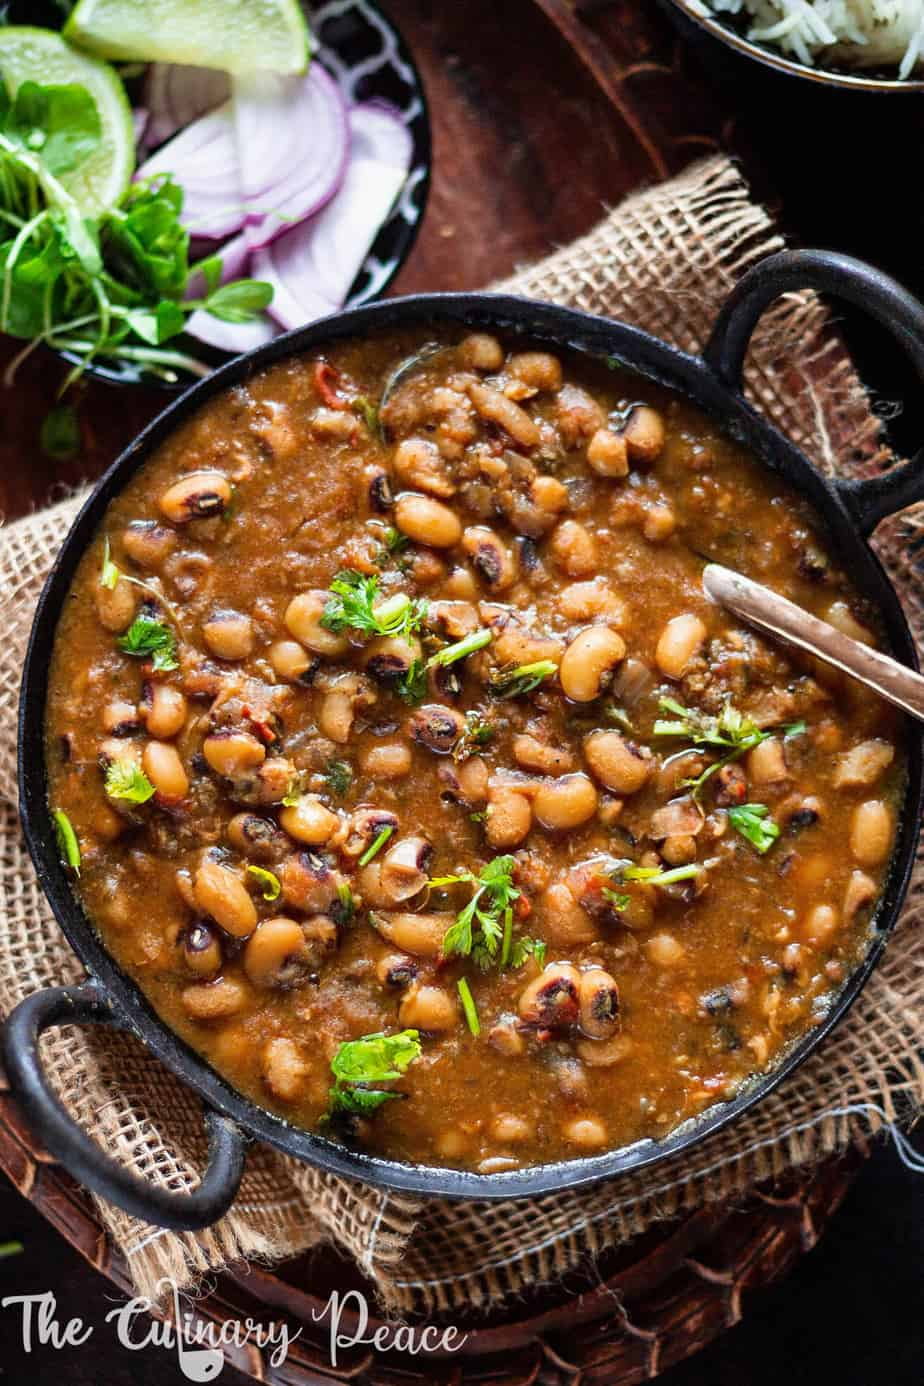 A flatlay image of black eyed peas curry or lobia masala served in a black iron kadai and placed on a wooden plate with onion, lemon and coriander leaves.